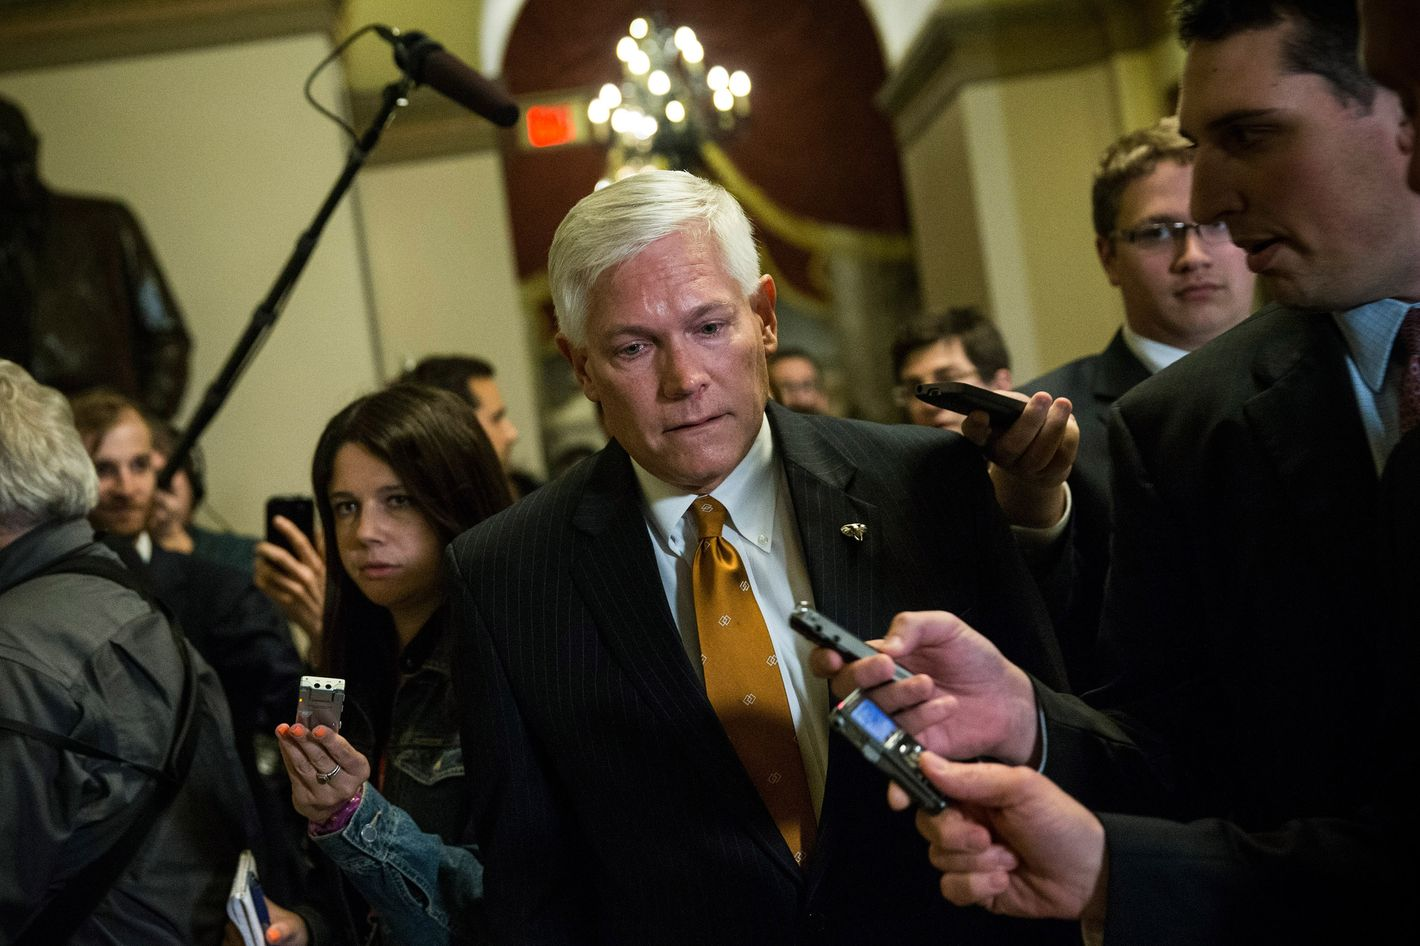 U.S. Rep. Pete Sessions (R-TX) leaves Speaker Boehner's office after a meeting amongst Republican House leadership at the Capitol Building on October 15, 2013 in Washington, DC. The government has been shut down for 14 days.